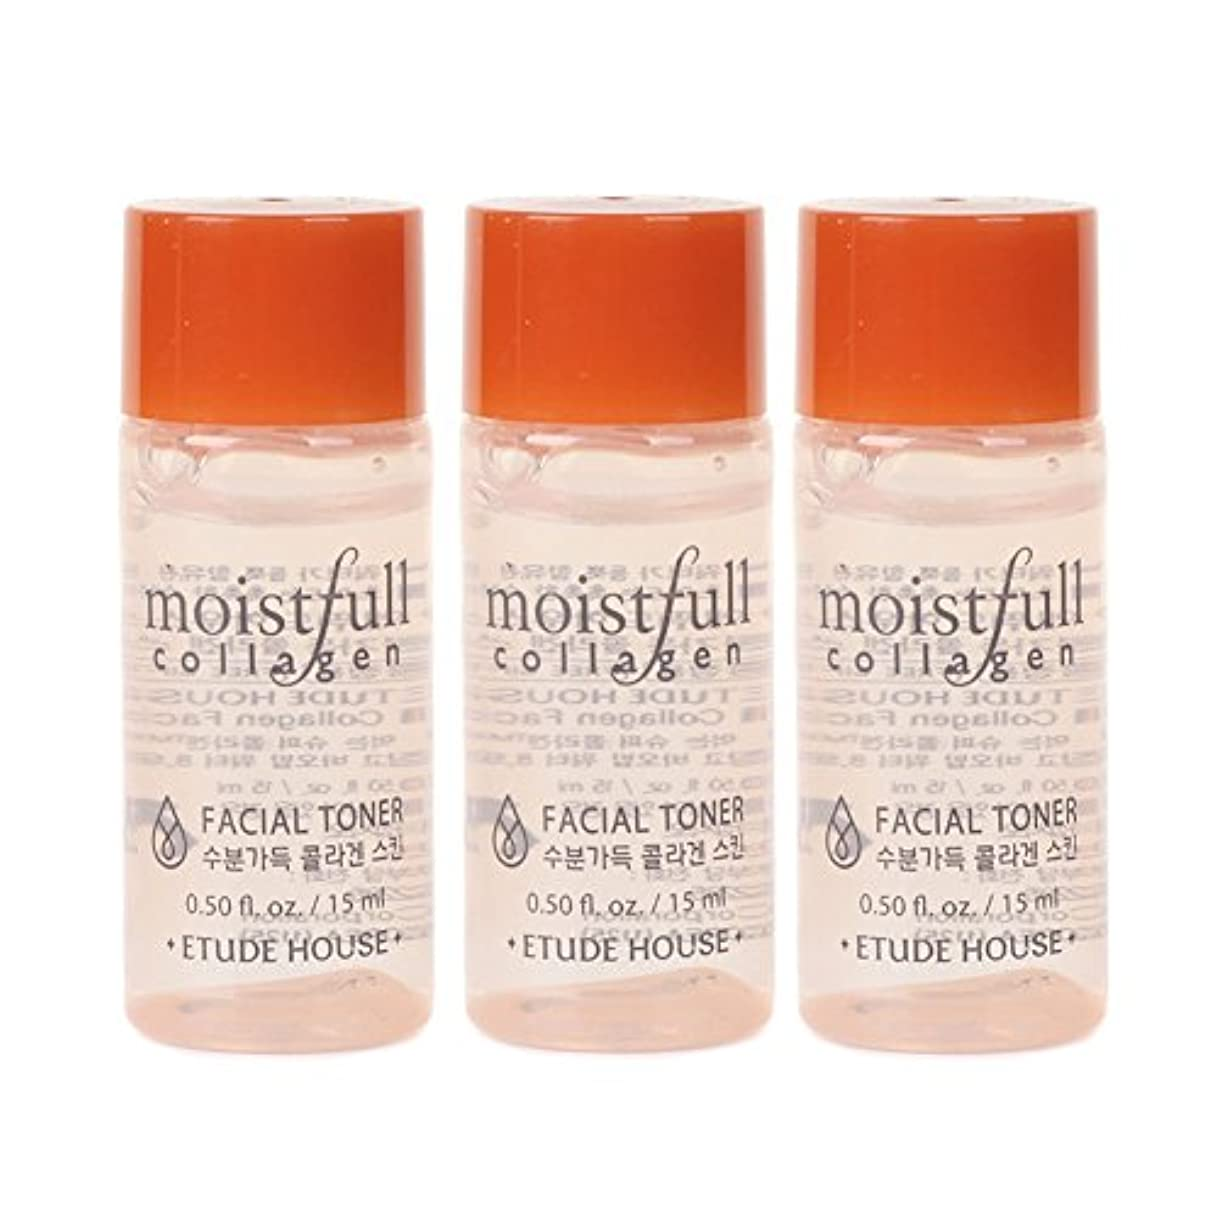 プロテスタントそしてバーEtude House Moistfull Collagen Facial Toner 15ml x 3